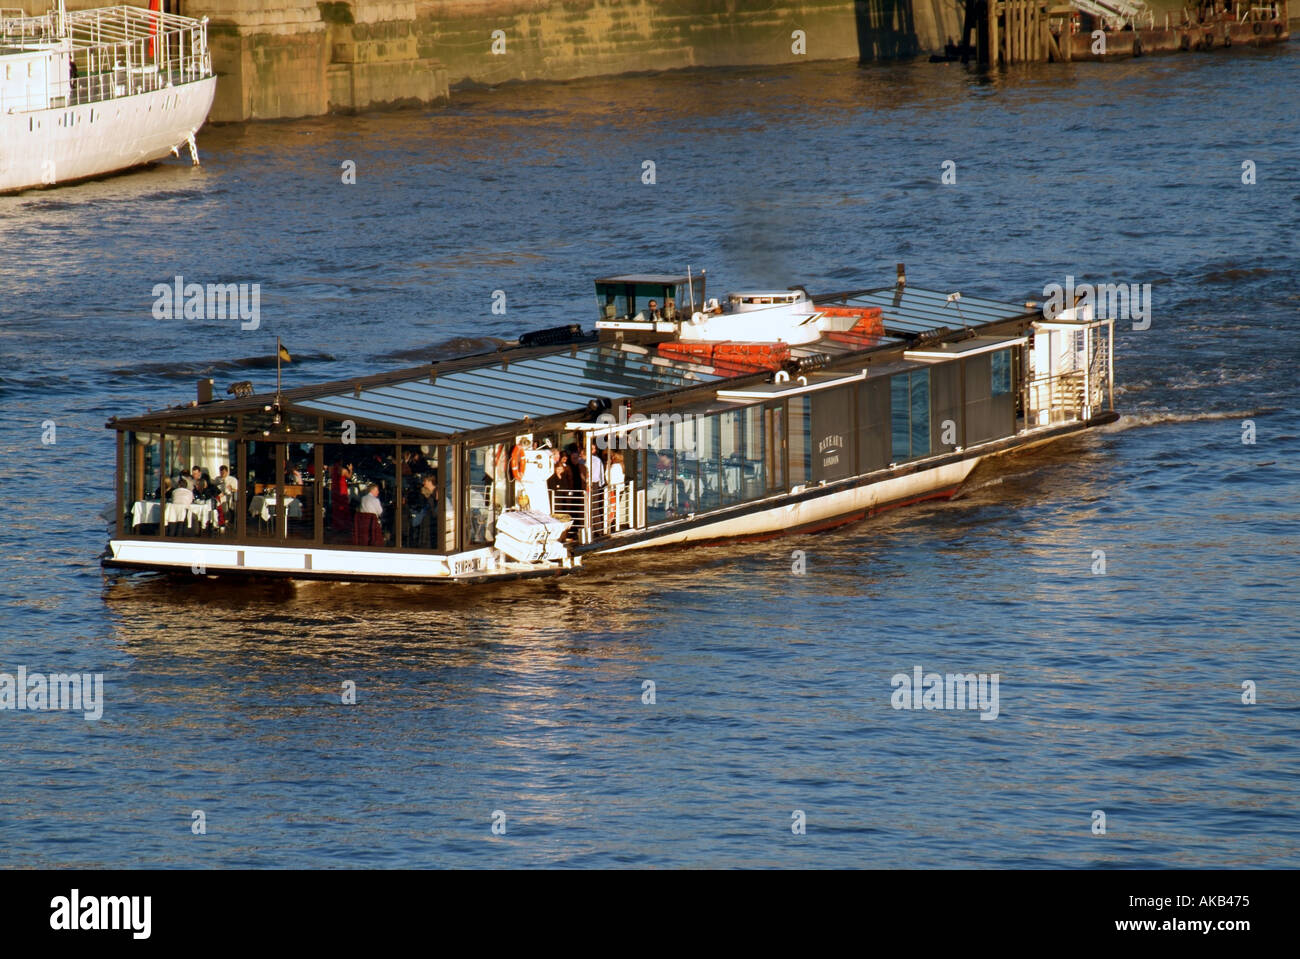 London River Thames Bateaux Mouches style tour boat Symphony with people at tables and captain at the helm - Stock Image